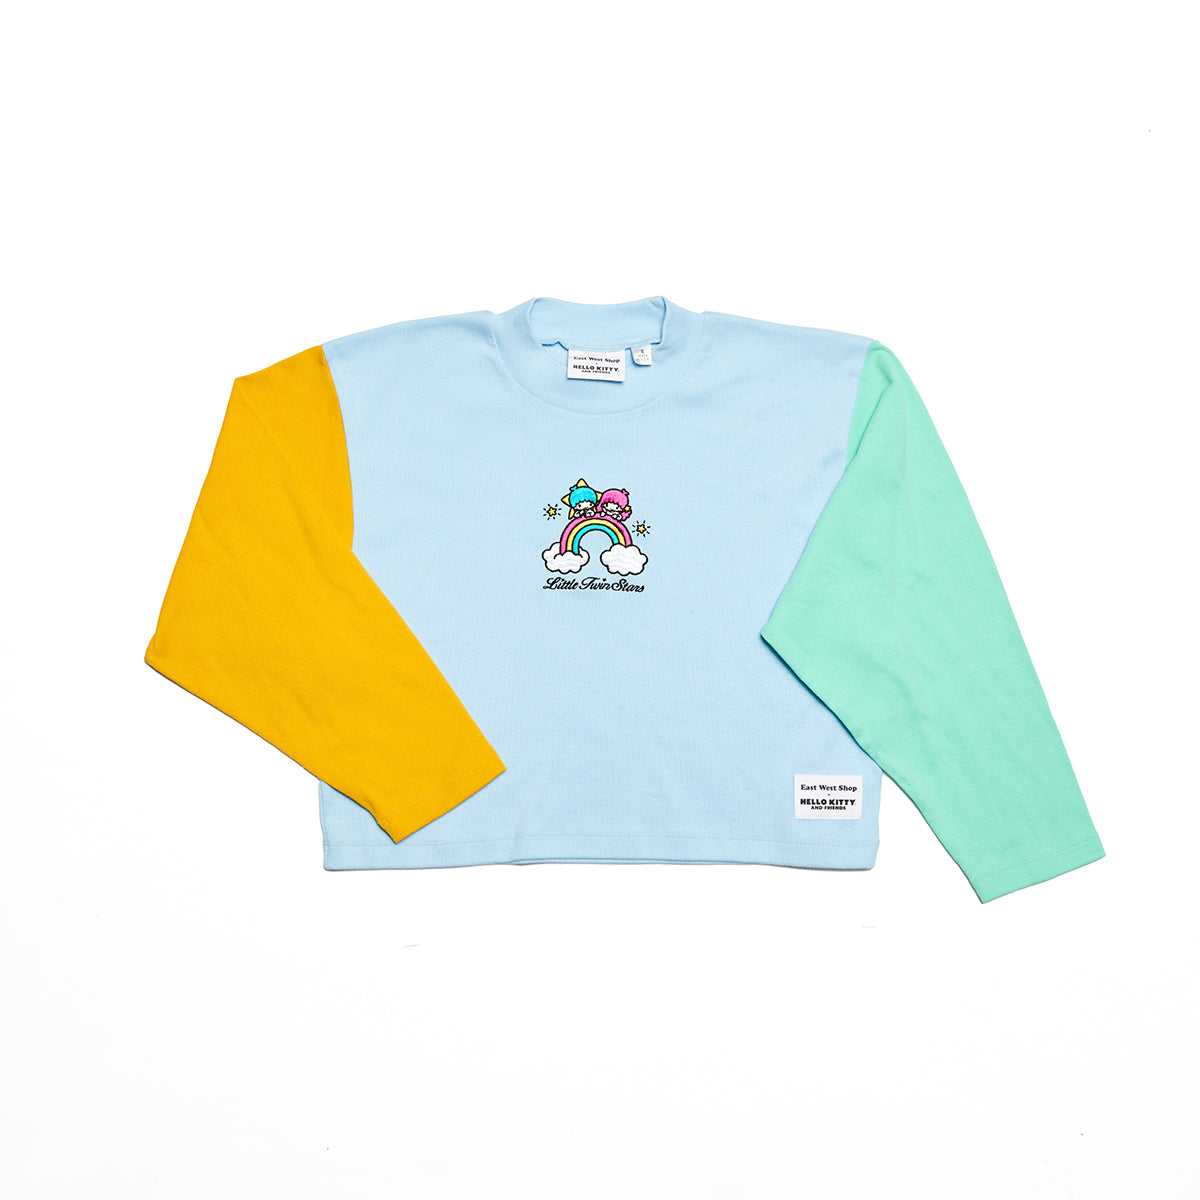 East West Shop x Little Twin Stars Color Block Shirt Blue